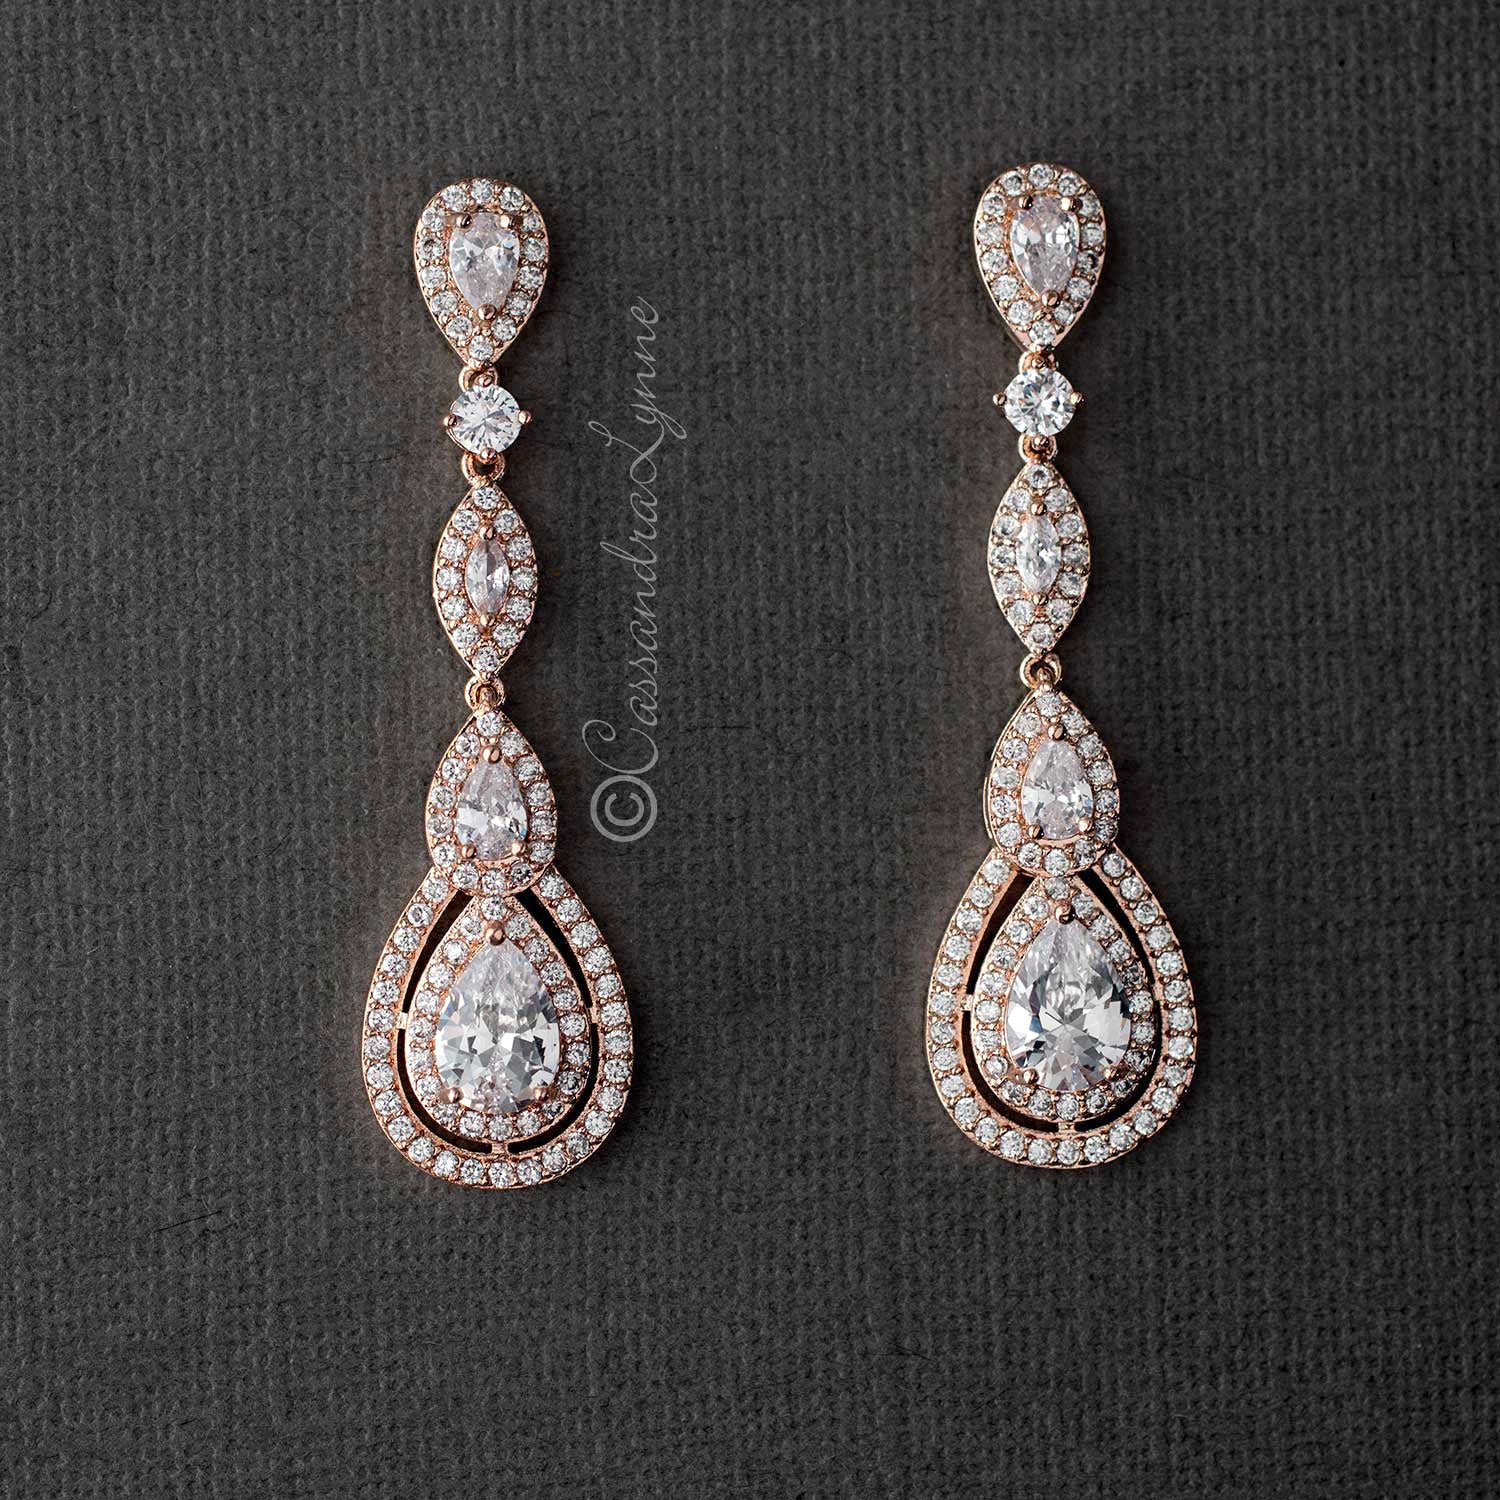 74423c5b31b9c Pave Set Teardrop and Marquise CZ Earrings